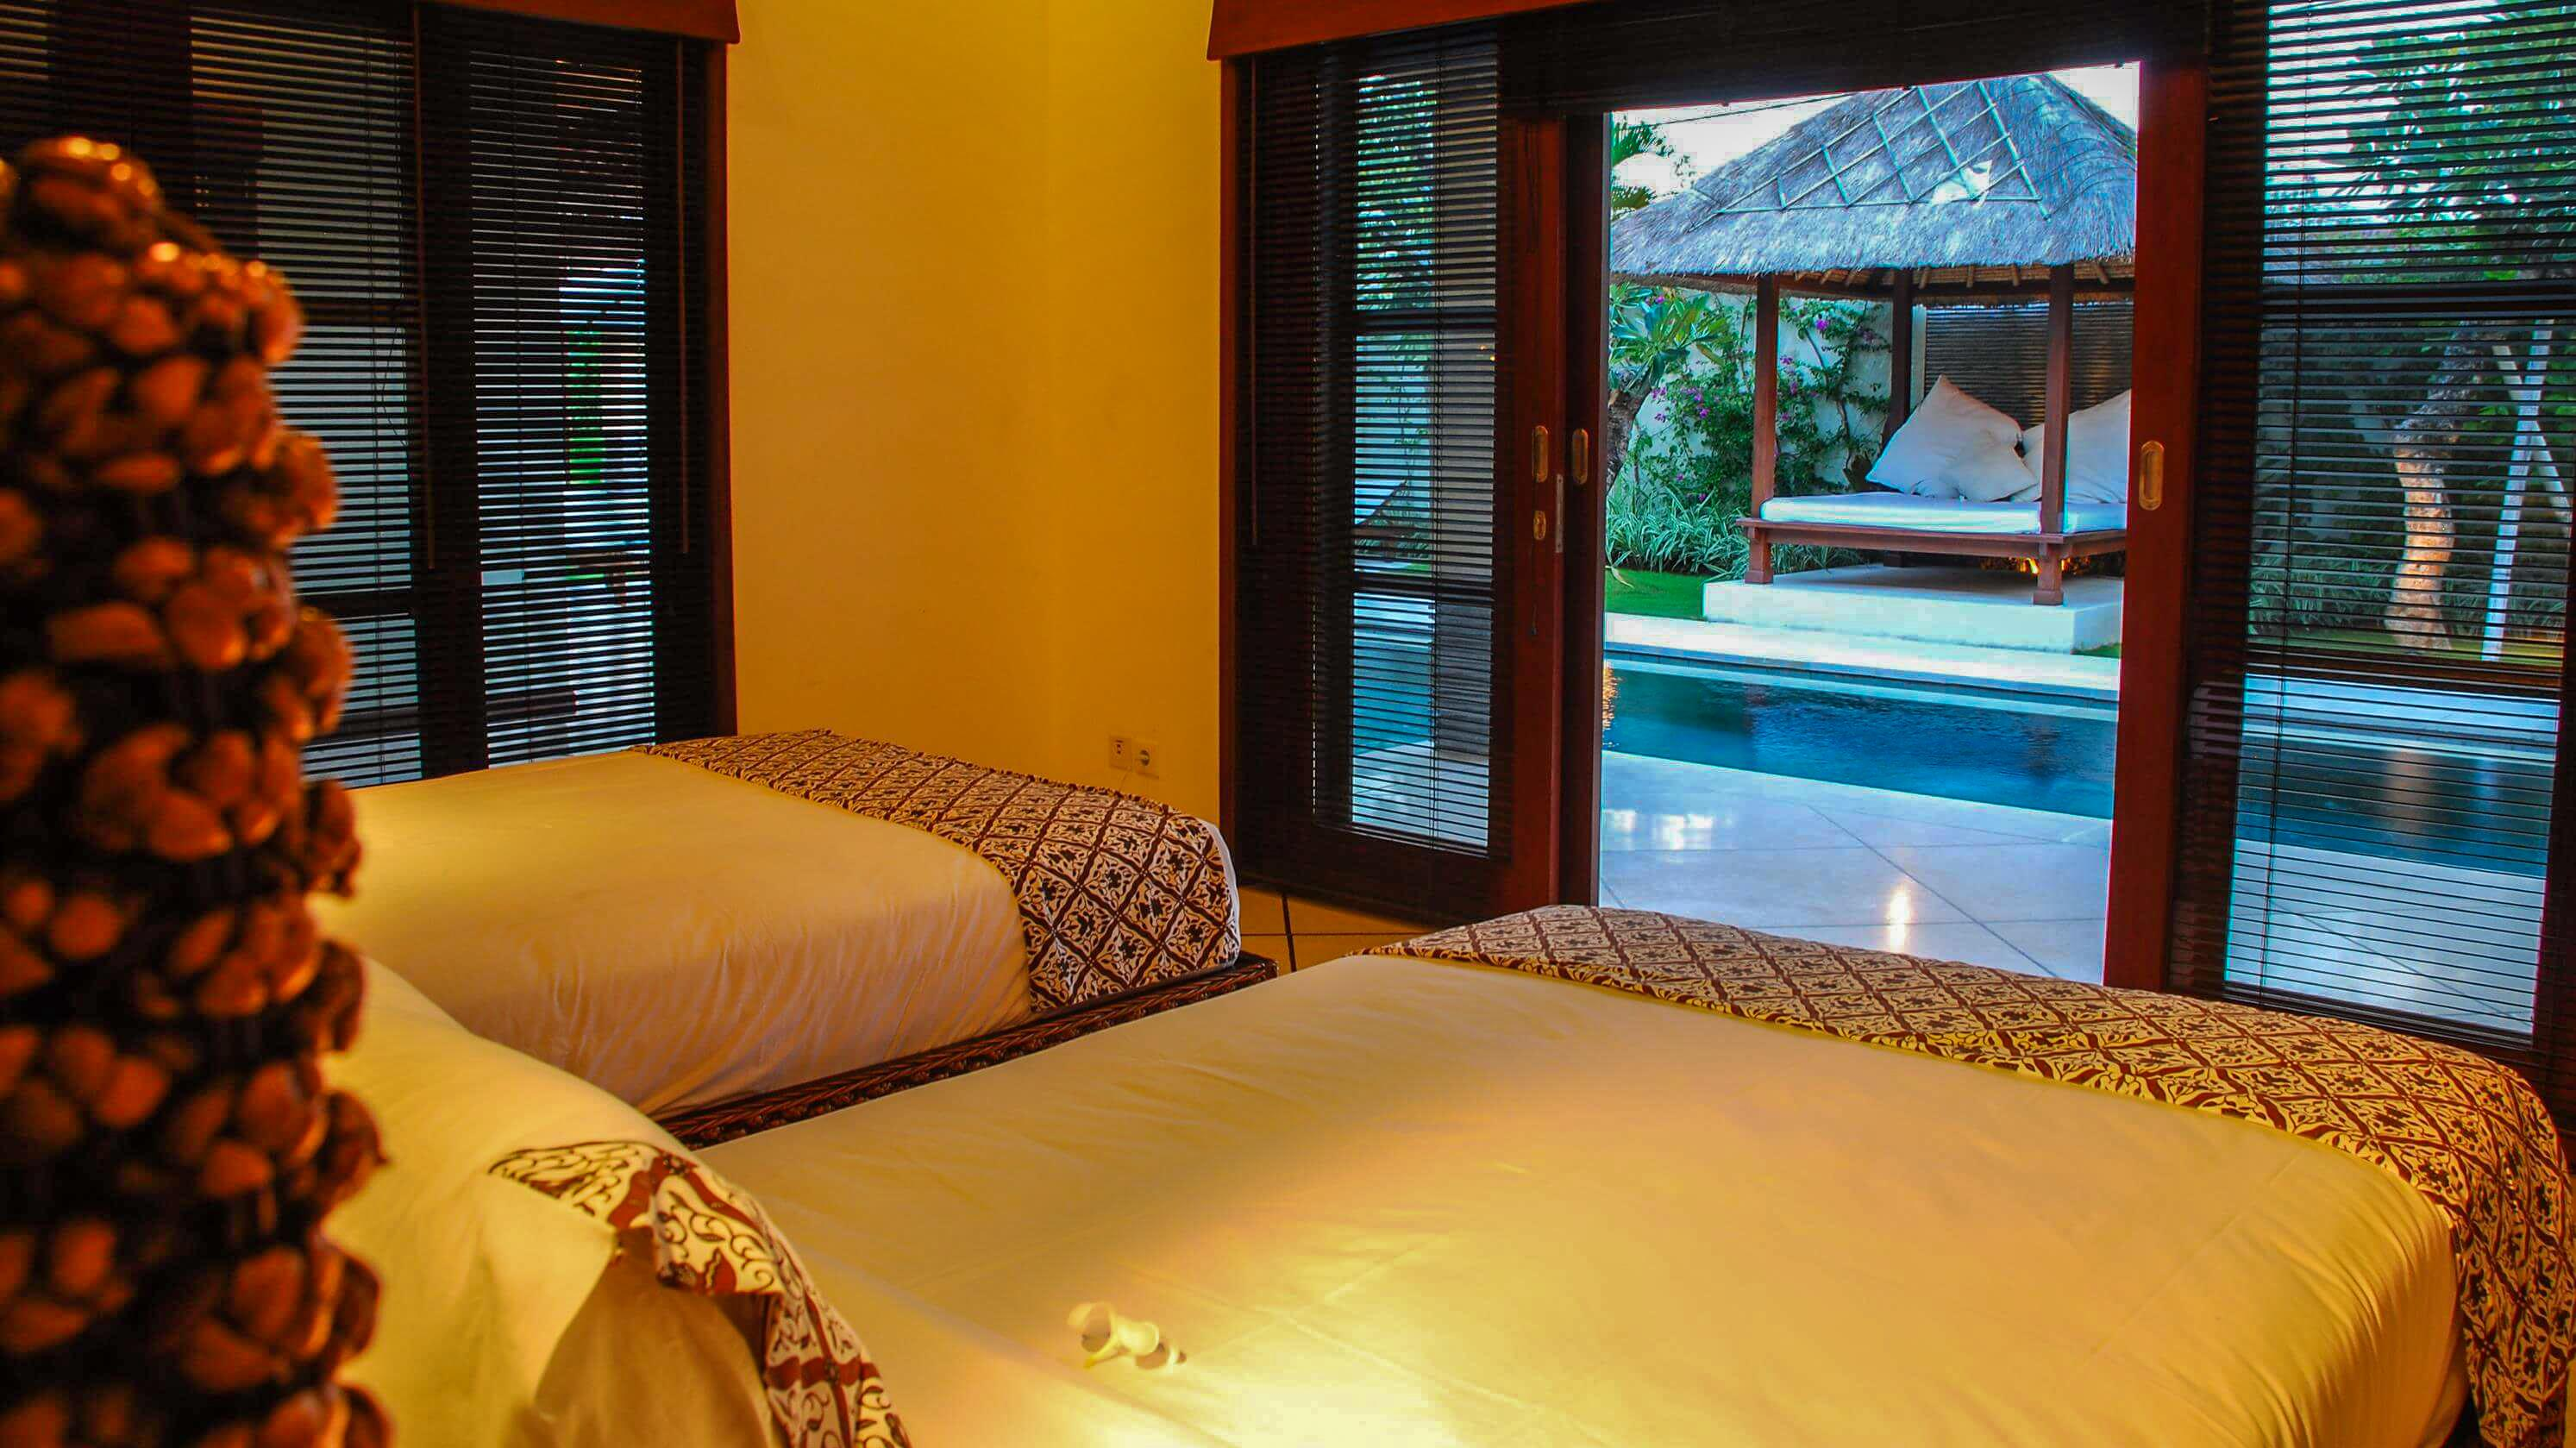 Twin Bedroom with Pool View - Villa Cinta - Seminyak, Bali